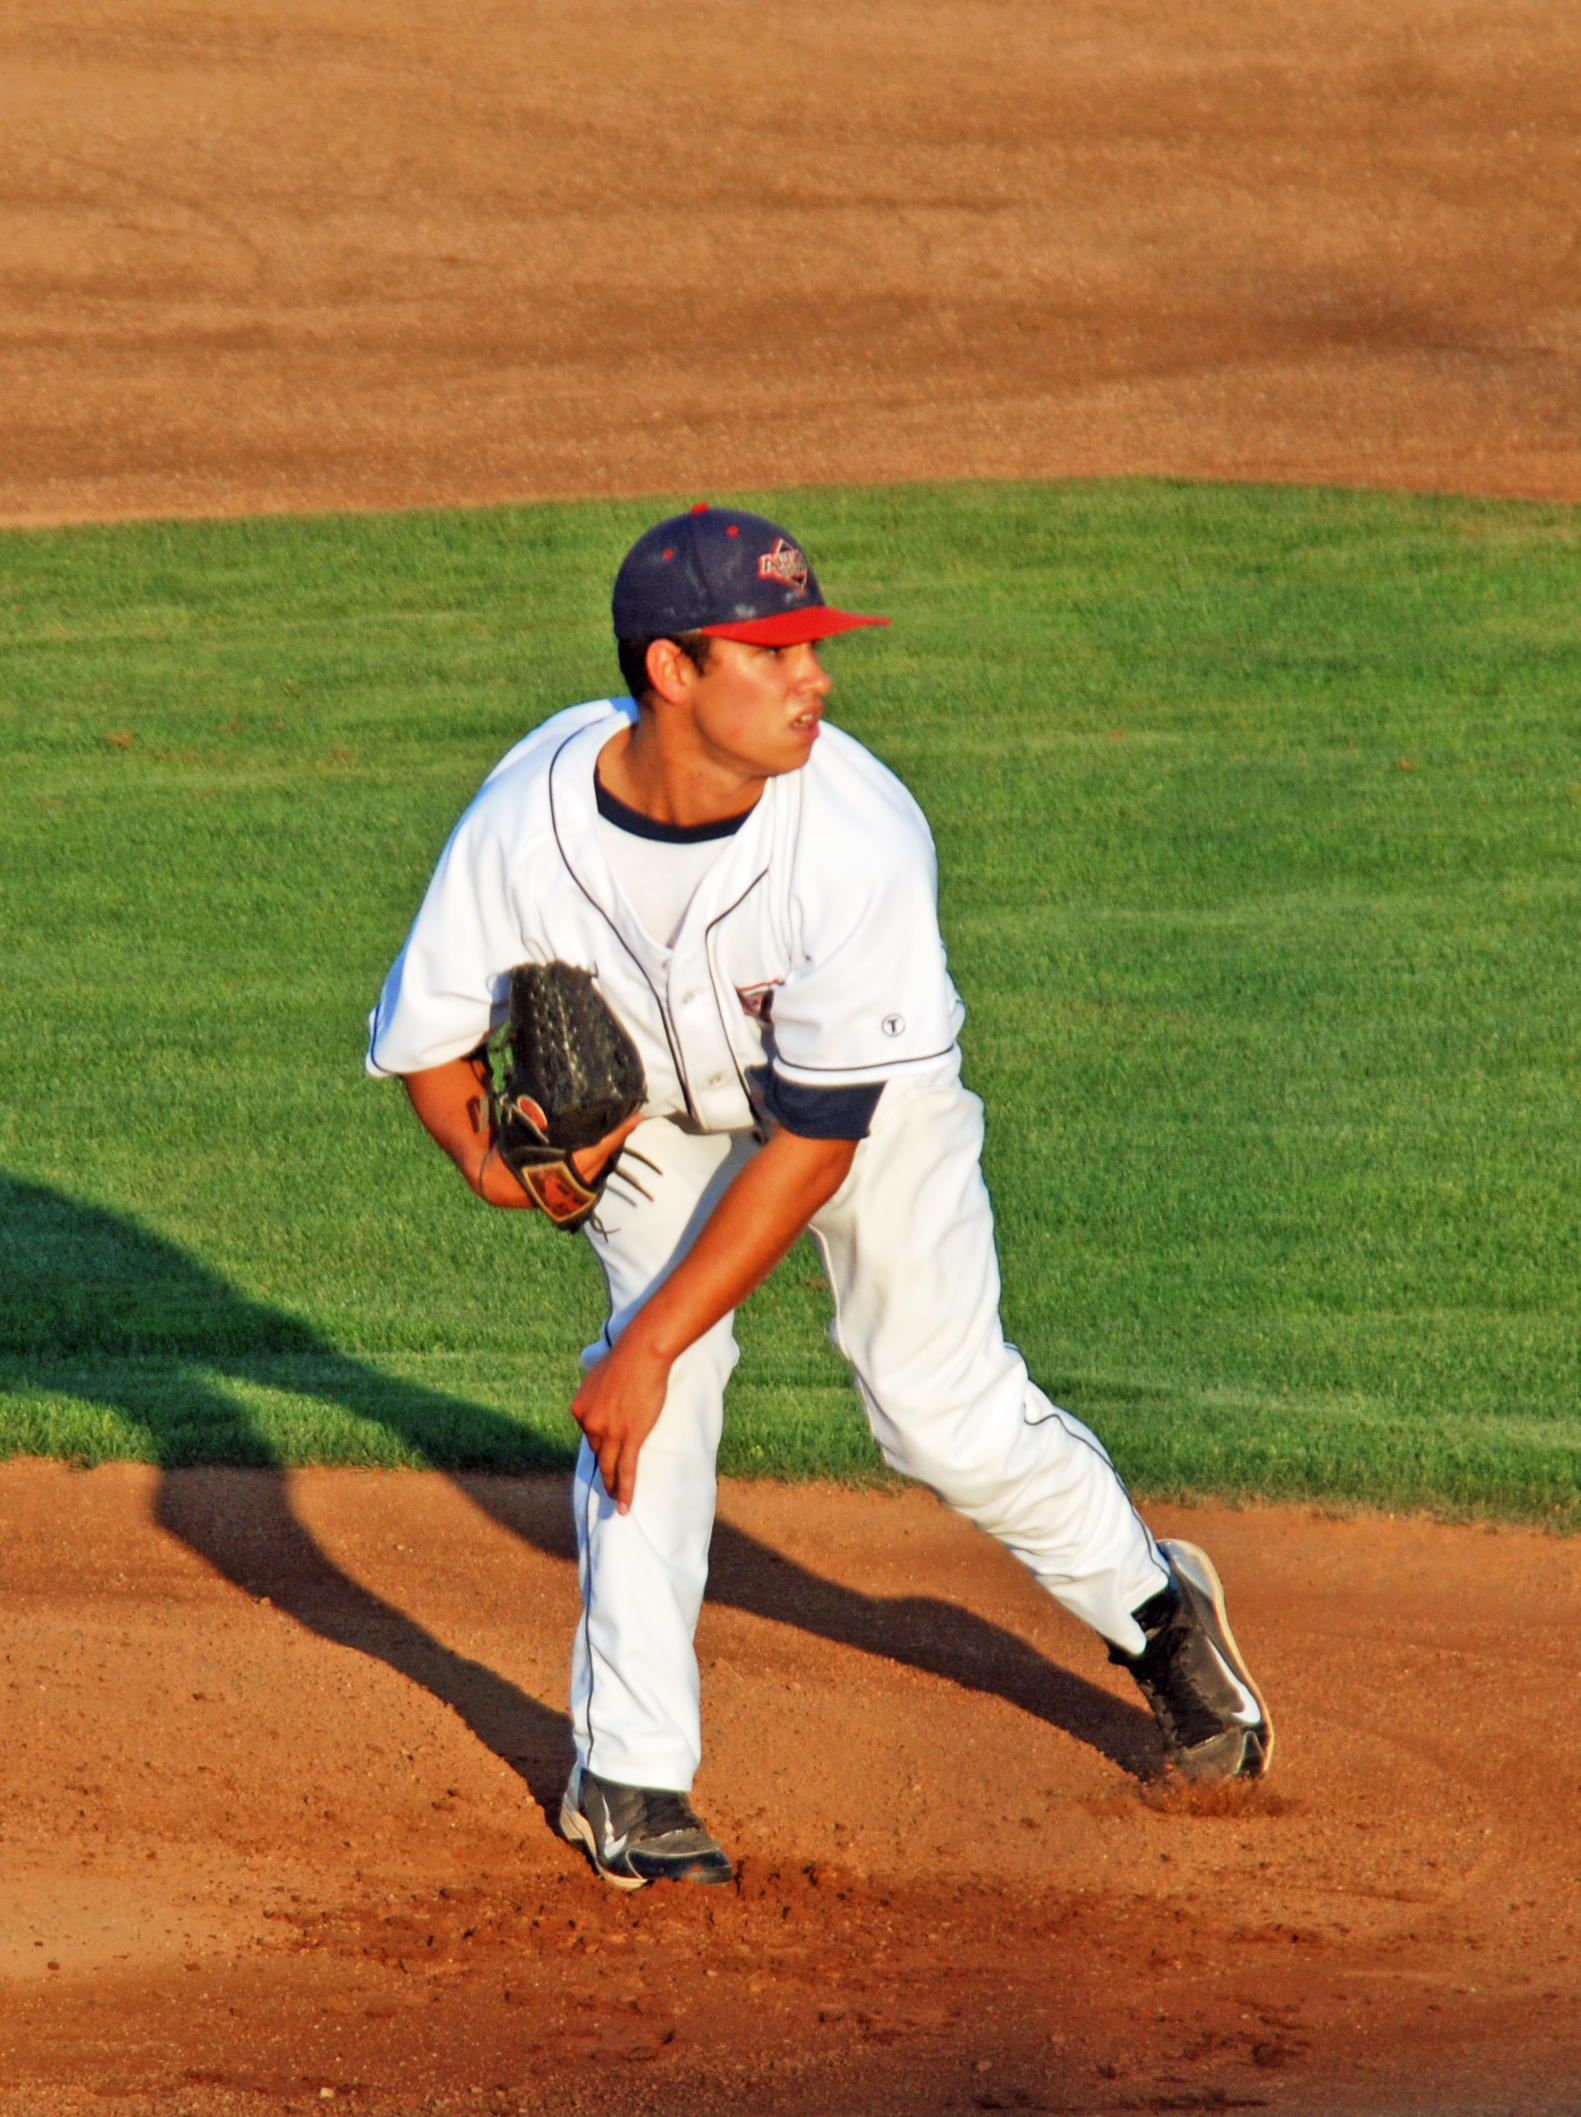 Marco Gonzales was Wednesday's starter for the St. Louis Cardinals. He was the 19th pick in the 2013 MLB Draft (highest of any AppleSox player) and was the 2010 WCL strikeout leader.